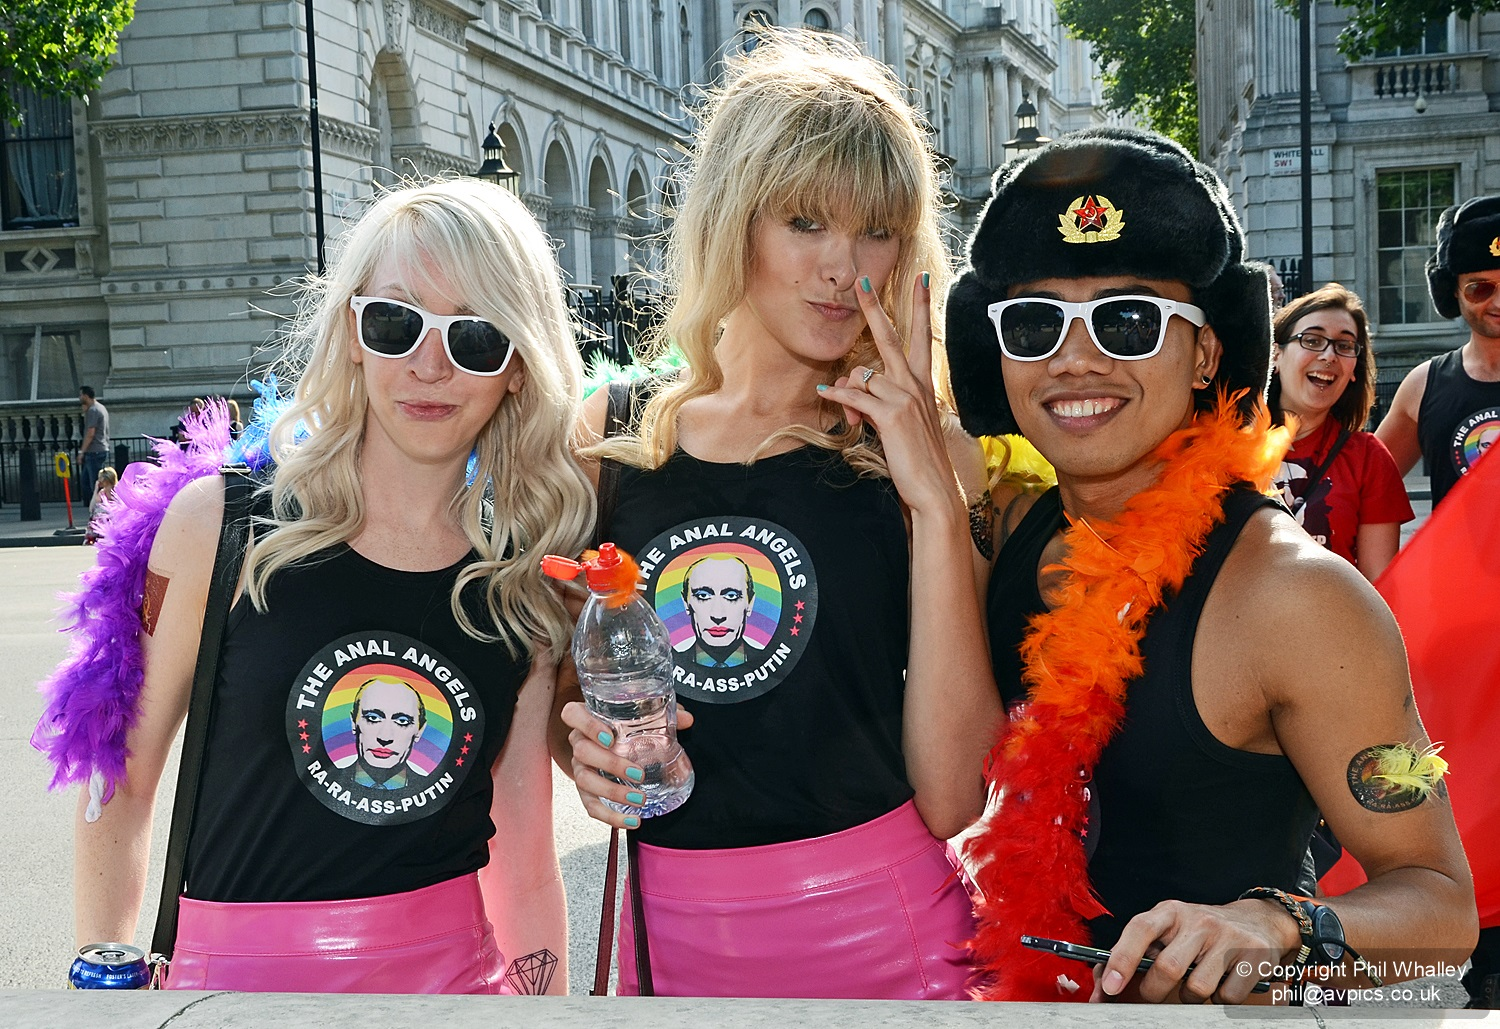 London LGBT Community Pride is the name of the lesbian, gay, bisexual, and transgender community int